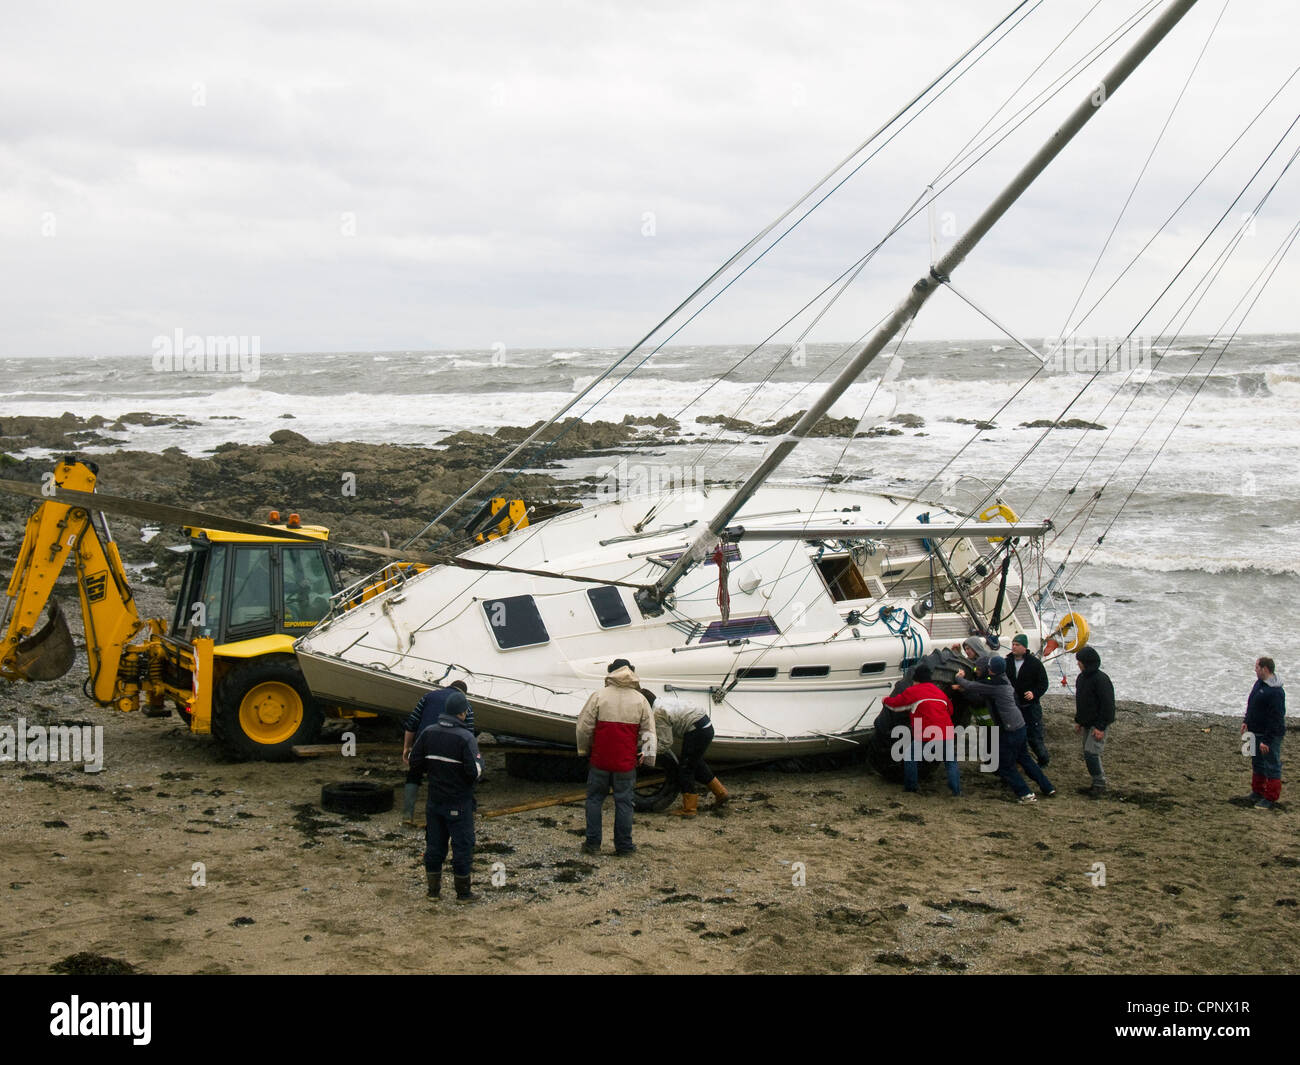 Yachts thrown up on the rocks at Skerries, county Dublin, Ireland after a spring storm in 2012 - Stock Image